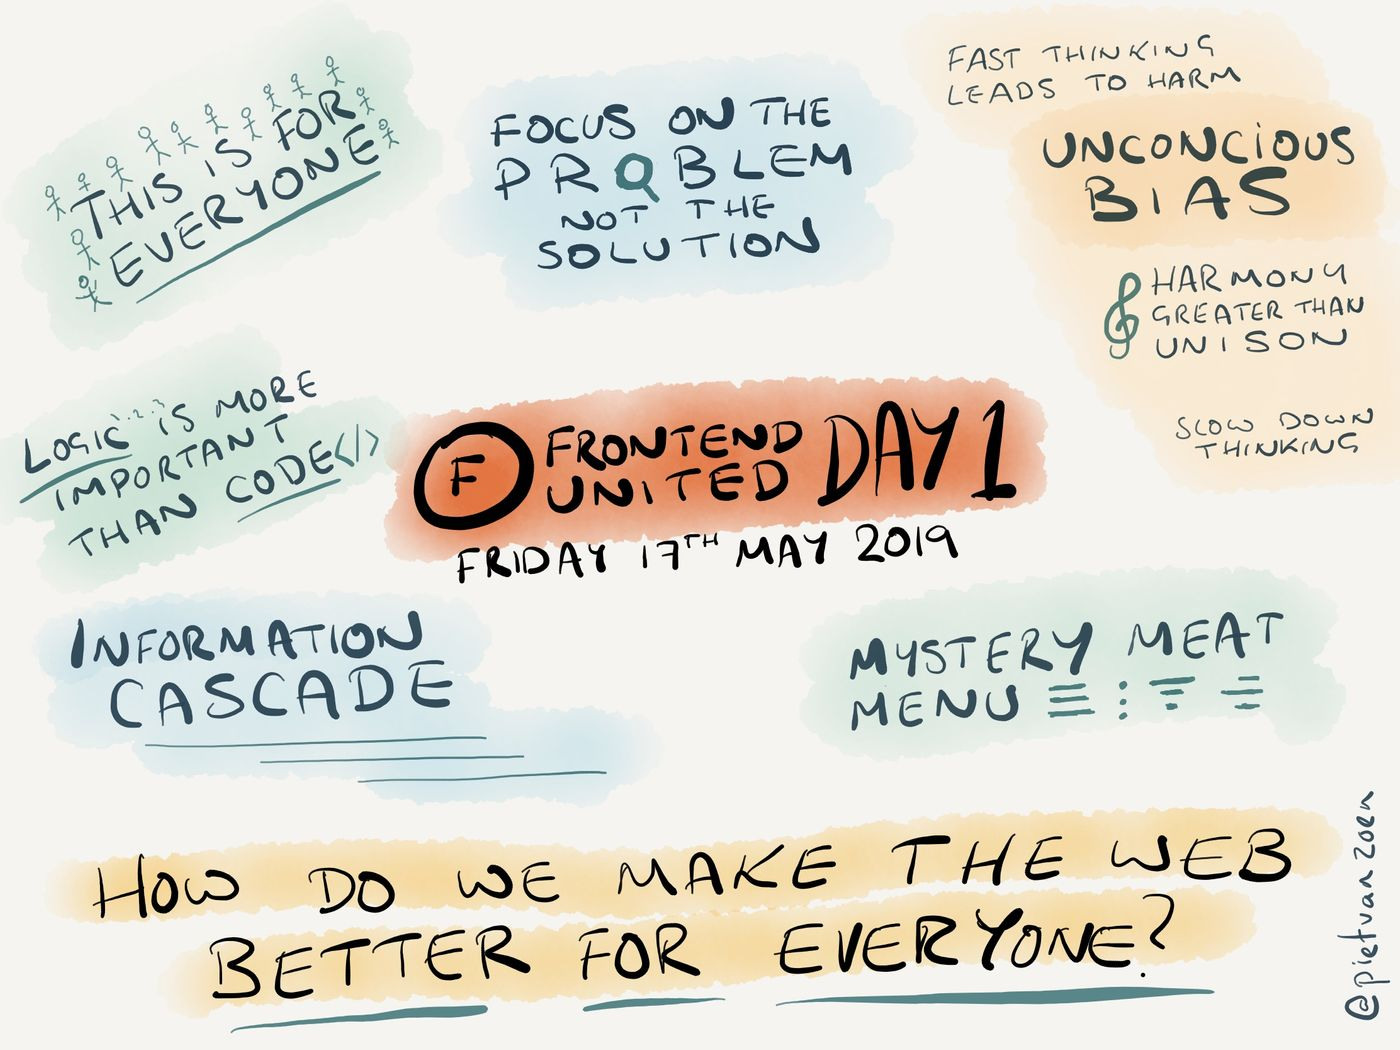 "Frontend united day 1 highlights. ""This is for everyone"". ""Focus on the problem, not the solution"". ""Unconcious bias"". ""Harmony is greater than unison"". ""Logic is more important than code"". ""Information cascade"". ""Mystery meat menu"". ""How do we make the web better for everyone?"""